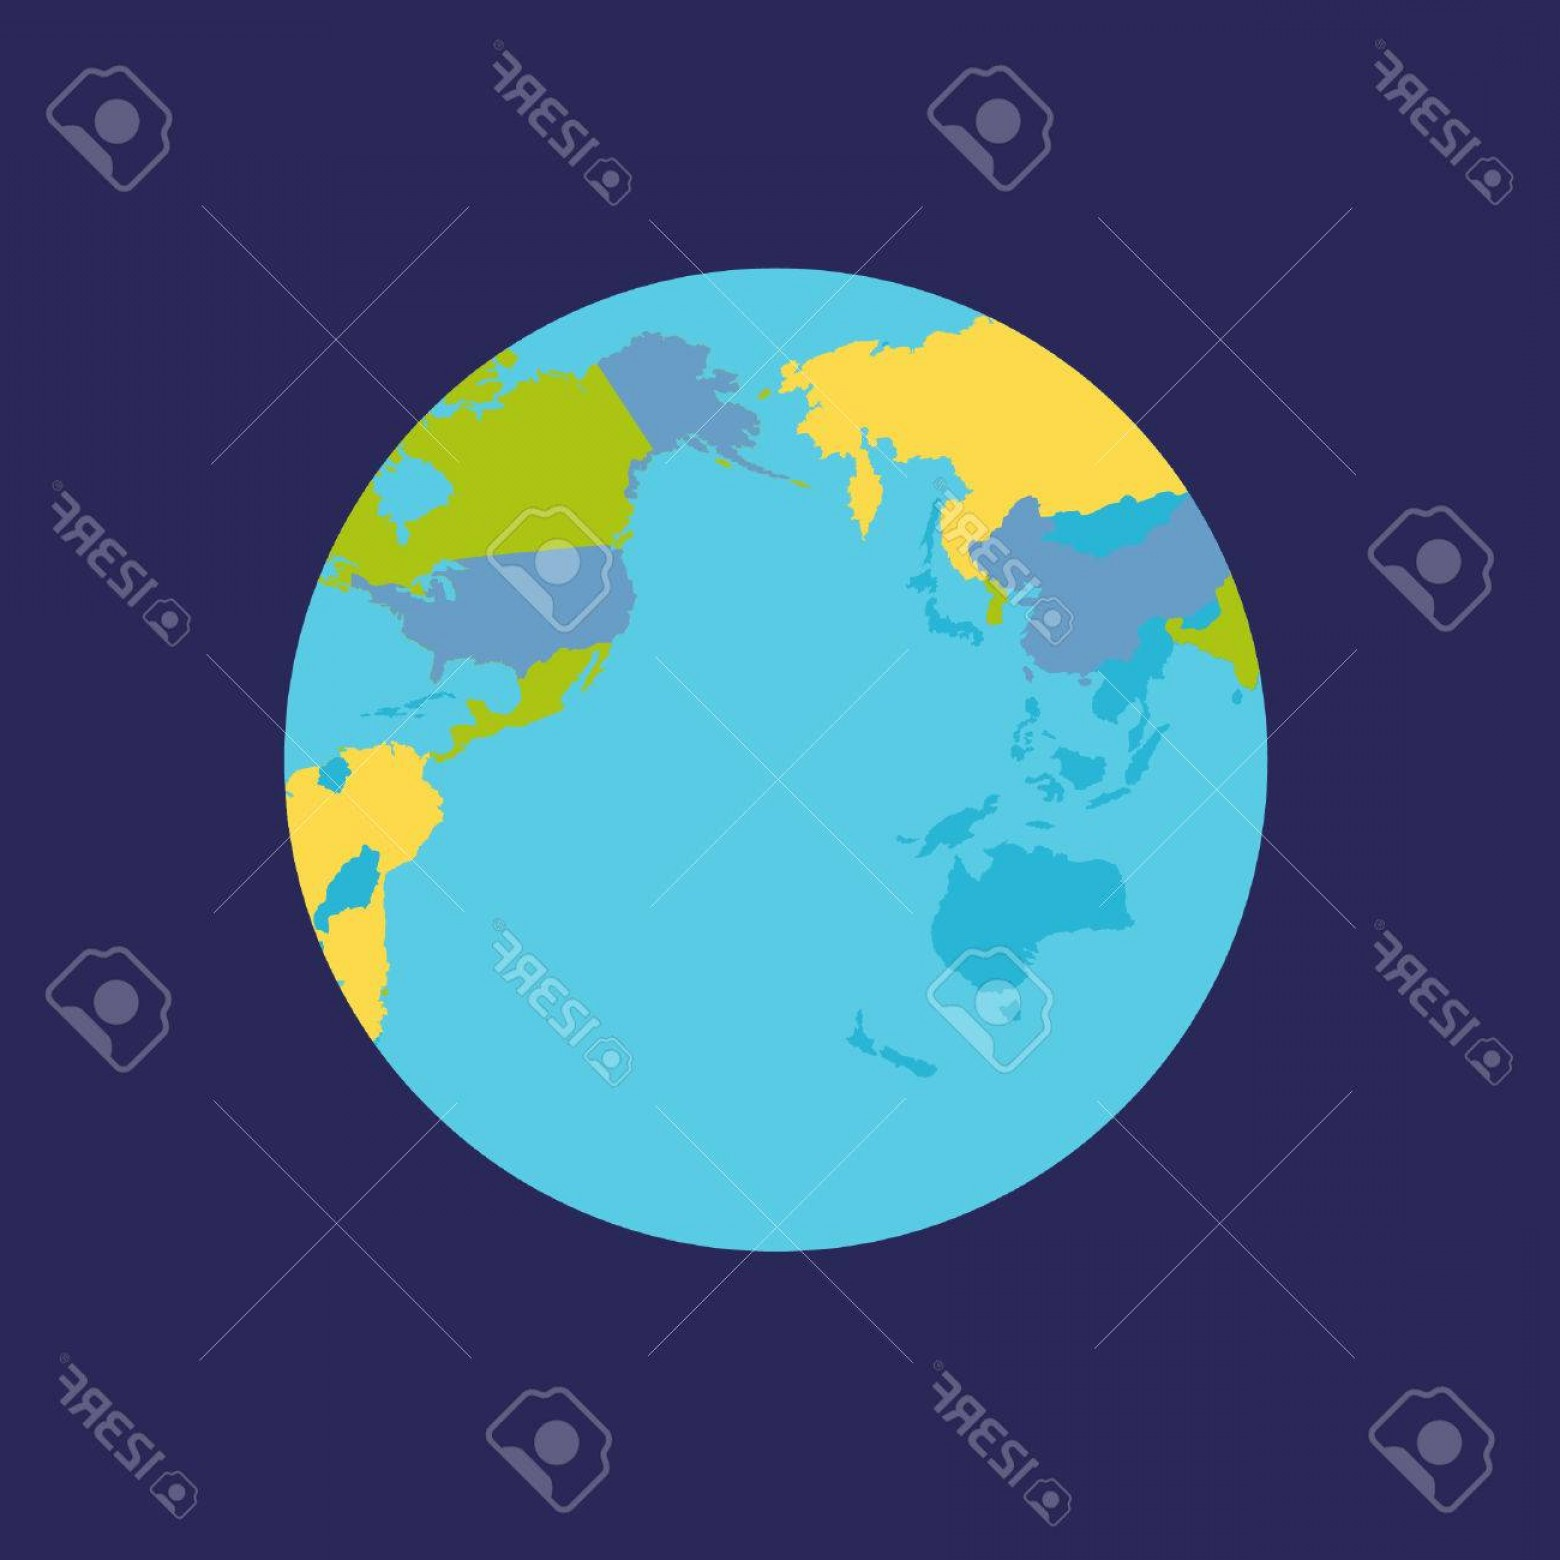 Vector Globe Countries: Photostock Vector Planet Earth Illustration World Globe With Political Map Countries Silhouettes On Planet Surface Glo